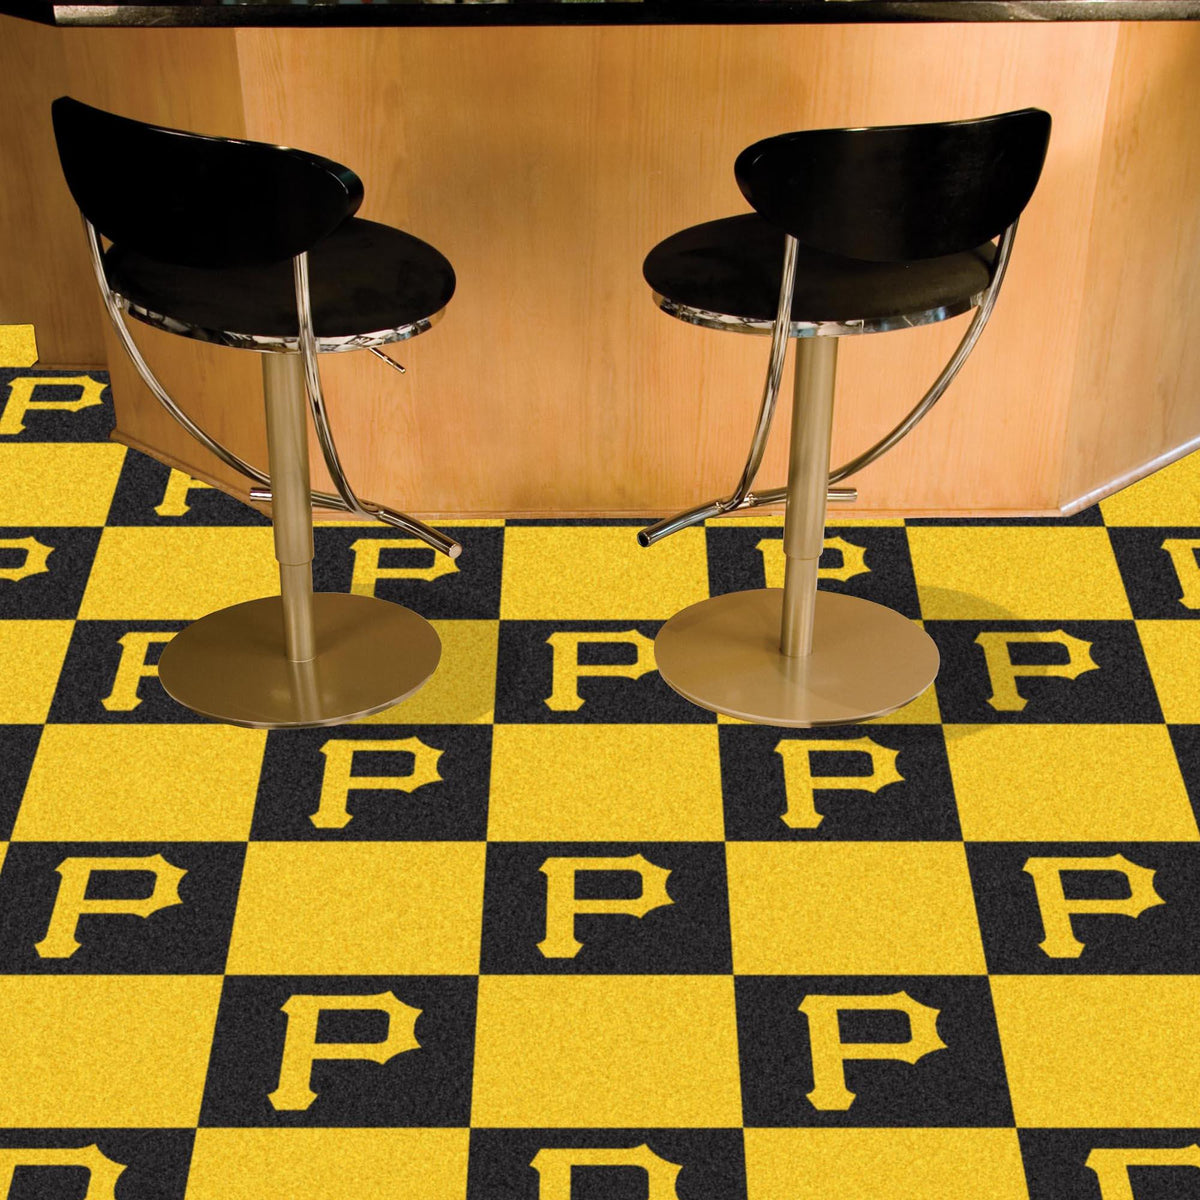 MLB - Team Carpet Tiles MLB Mats, Carpet Tile Flooring, Team Carpet Tiles, MLB, Home Fan Mats Pittsburgh Pirates